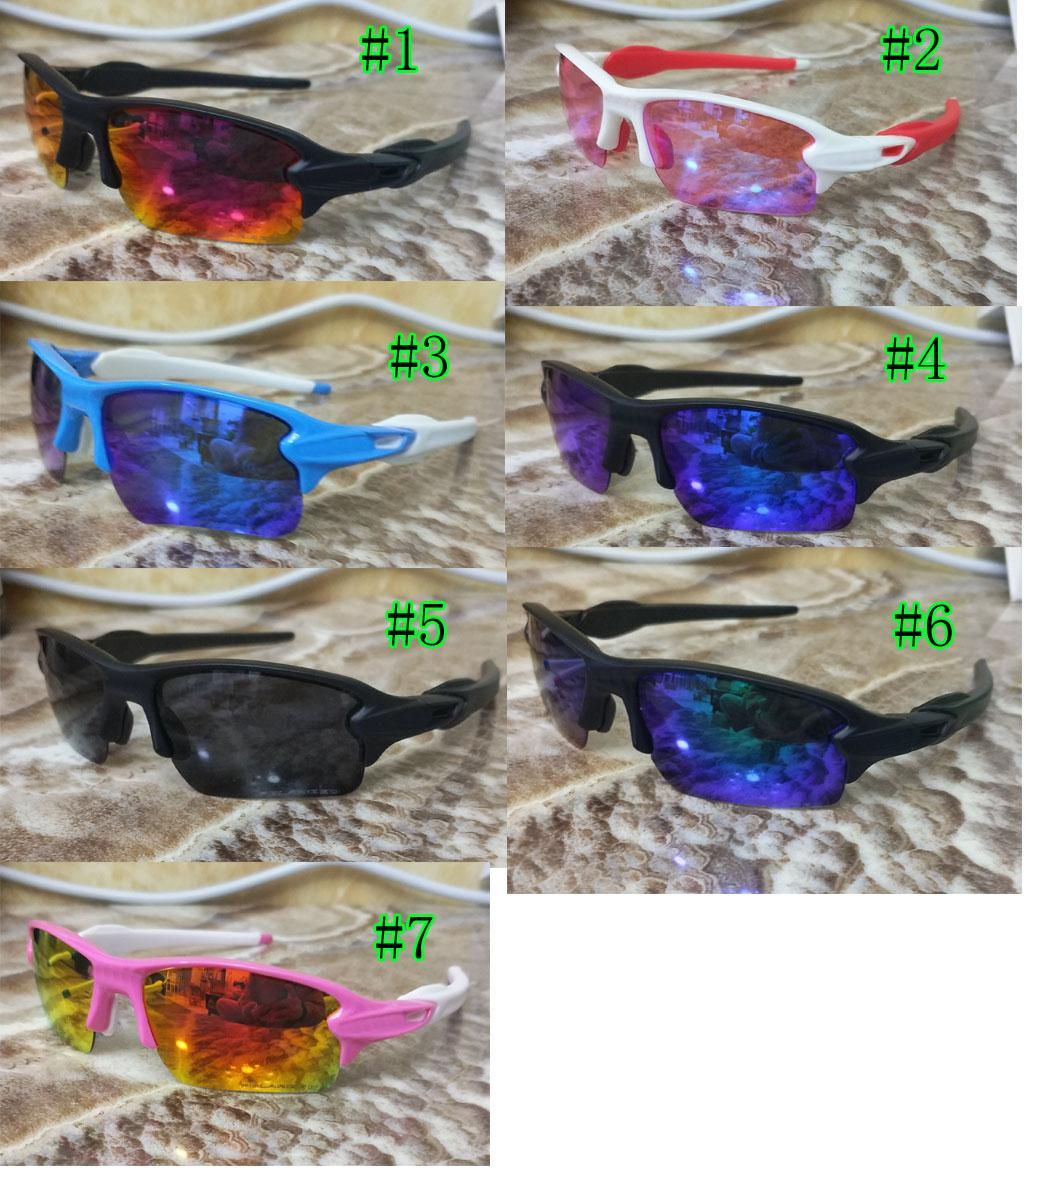 SUMMER man new sport Colorful riding glasses women drving wind Glasses men fashion cycling glass 7 colors polarized WINDPROOF free ship